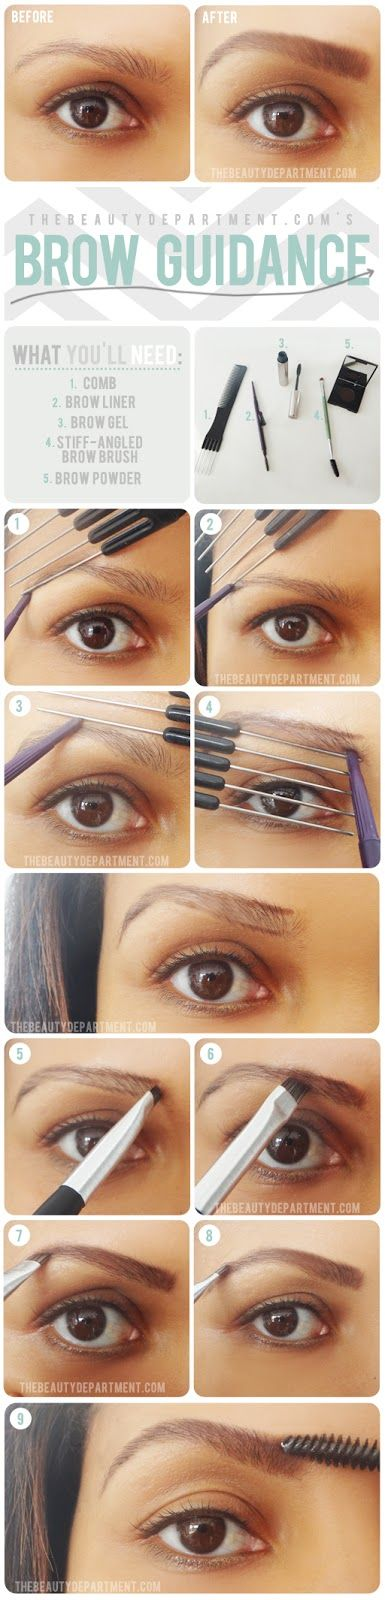 Beauty Buzz: The Best Guide to Beautiful Brows